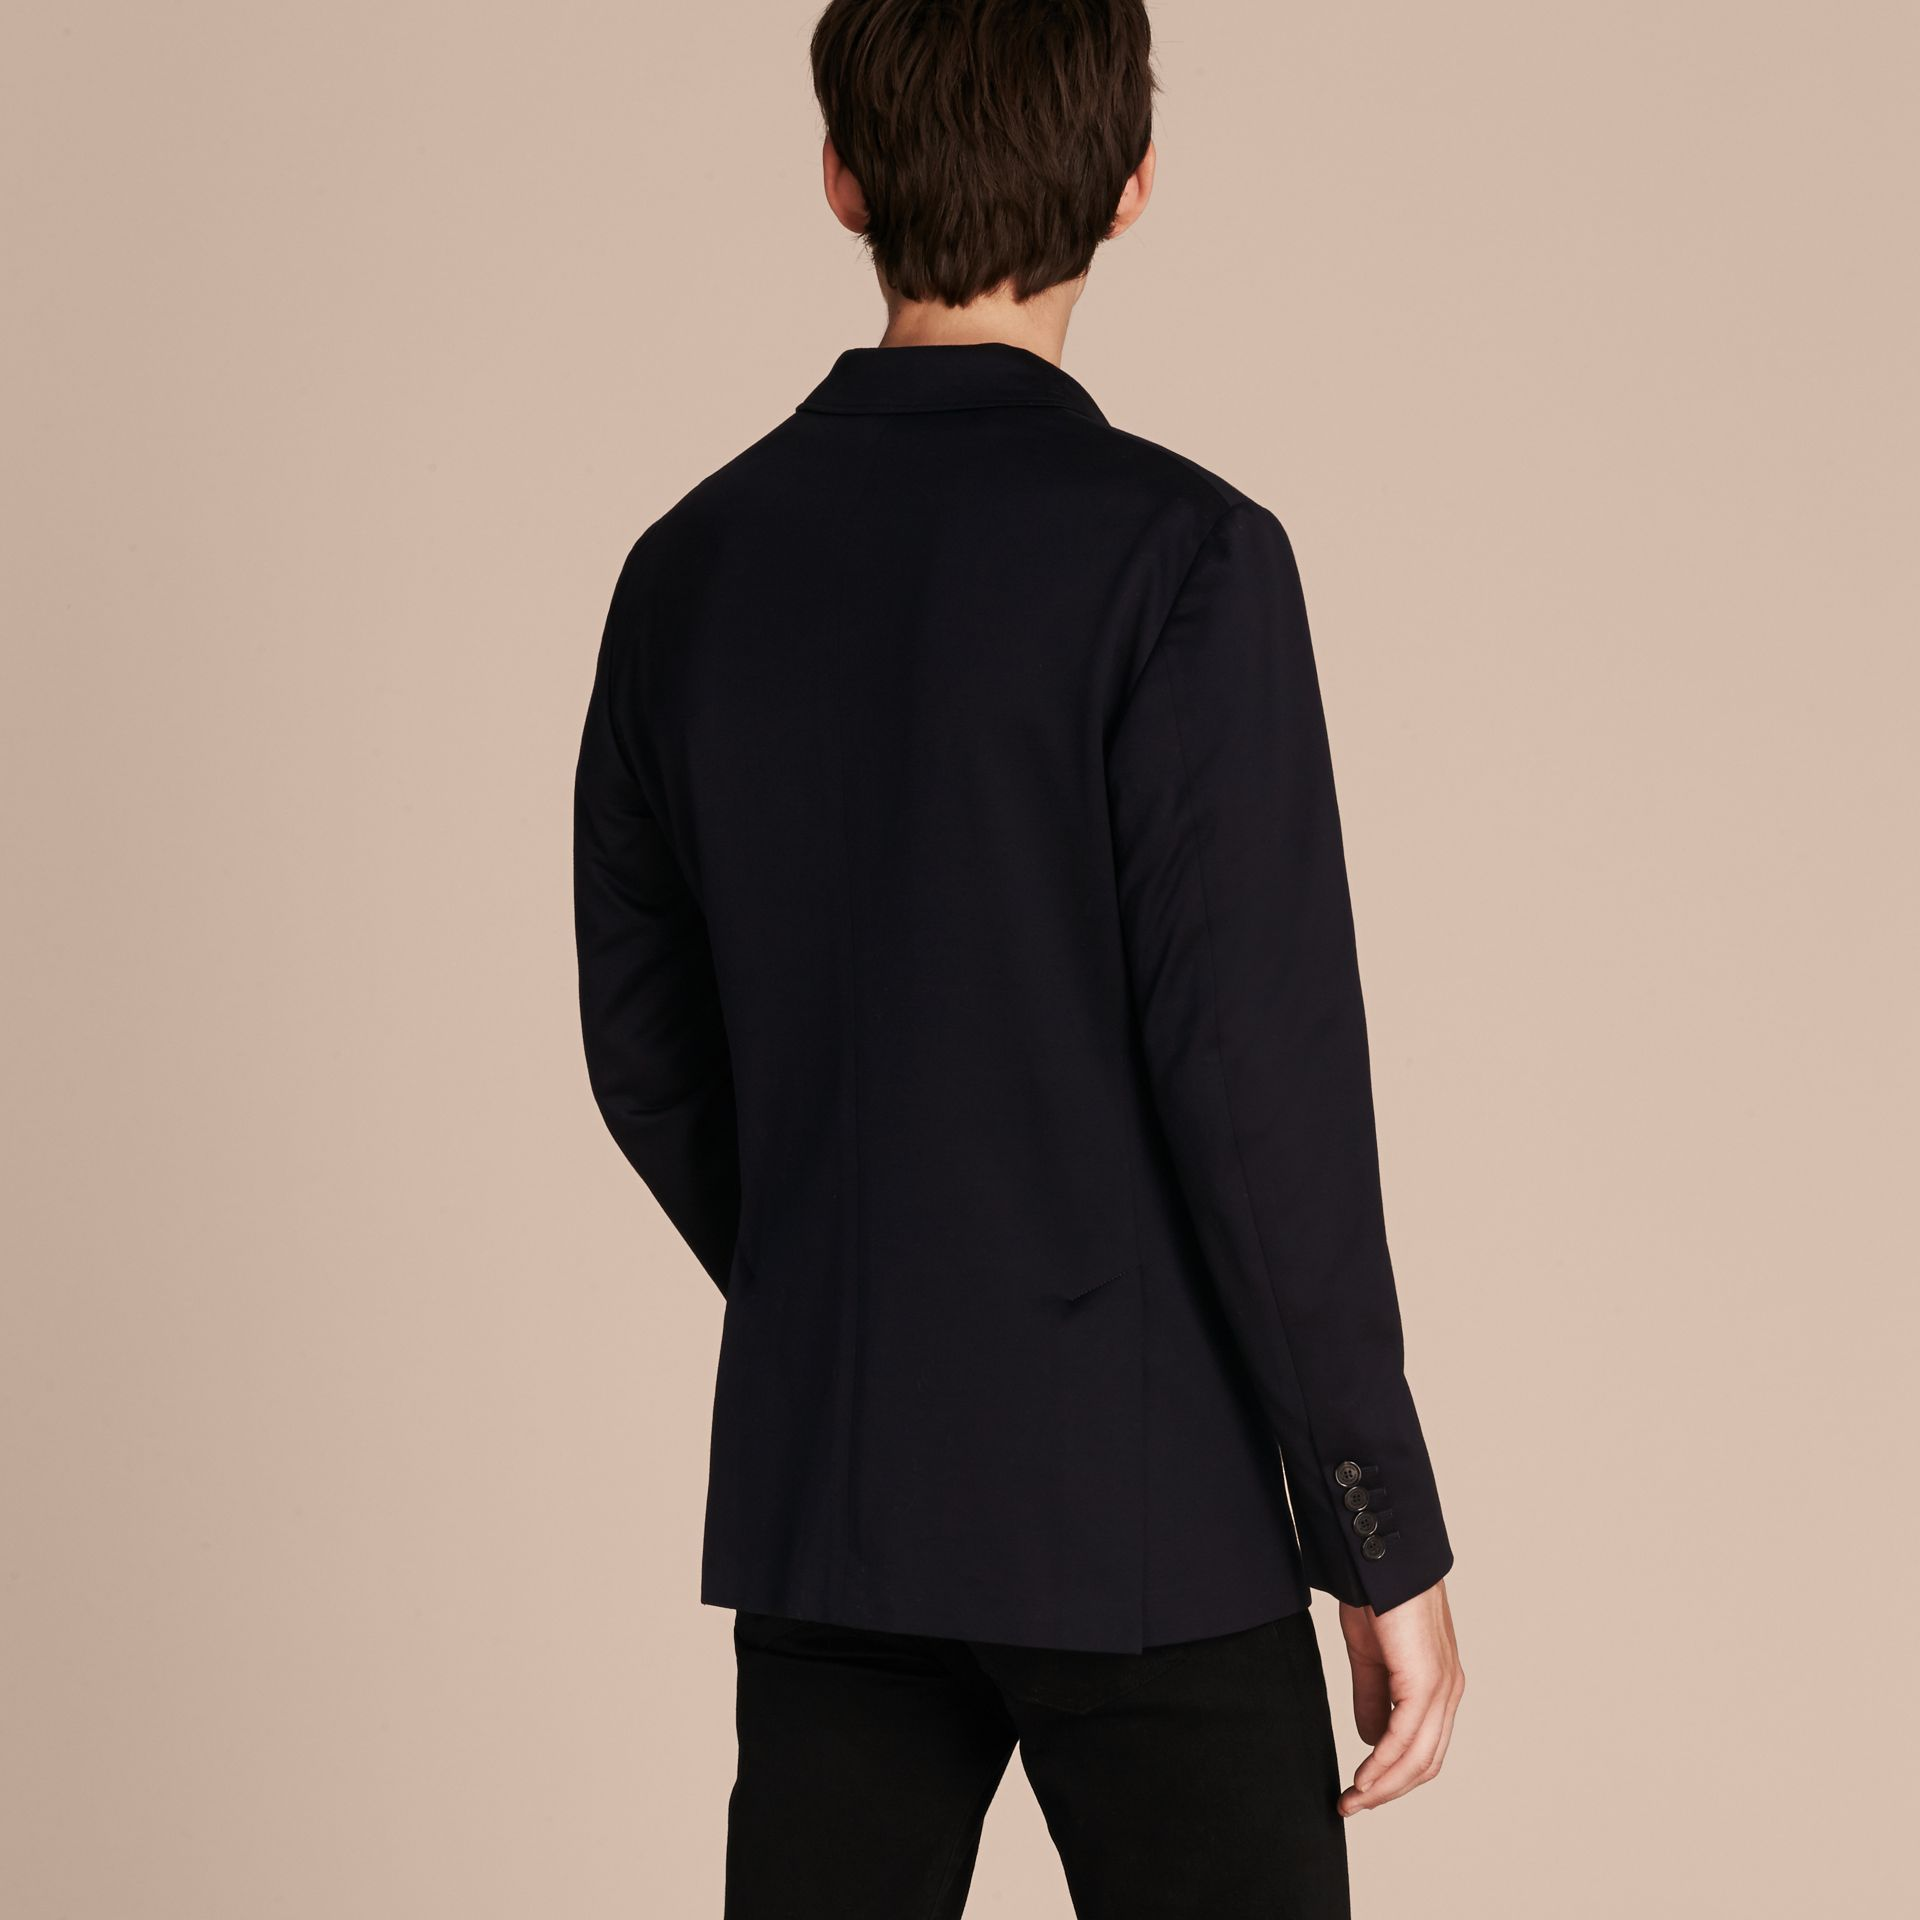 Navy Slim Fit Tailored Cotton Jersey Jacket Navy - gallery image 3